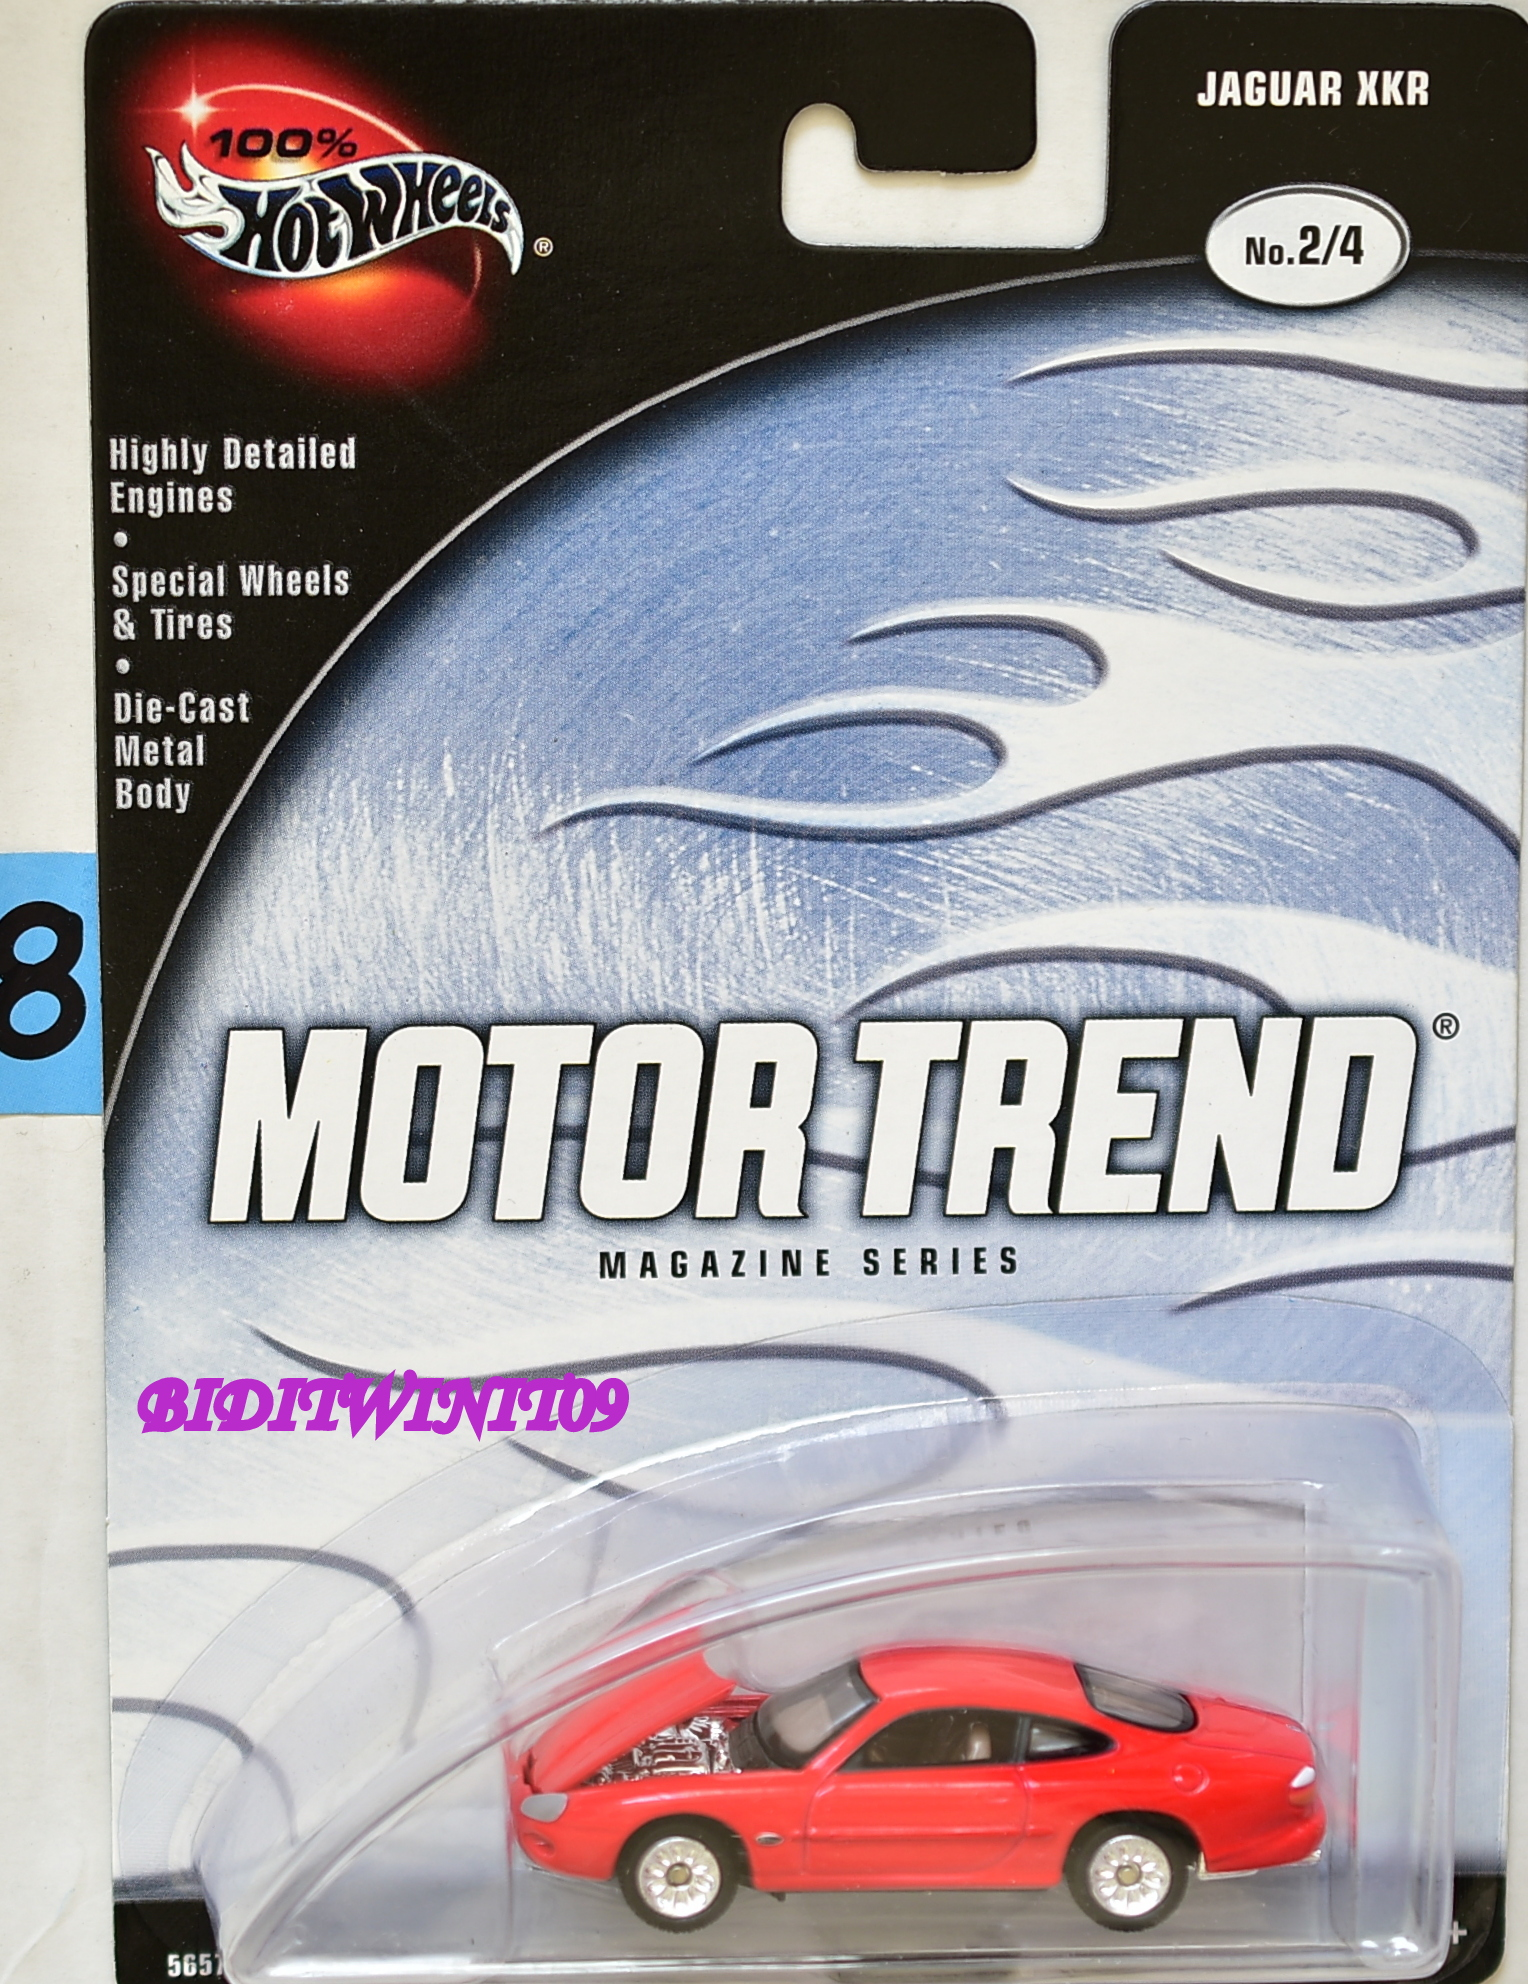 100% HOT WHEELS MOTOR TREND MAGAZINE SERIES JAGUAR XKR #2/4 RED